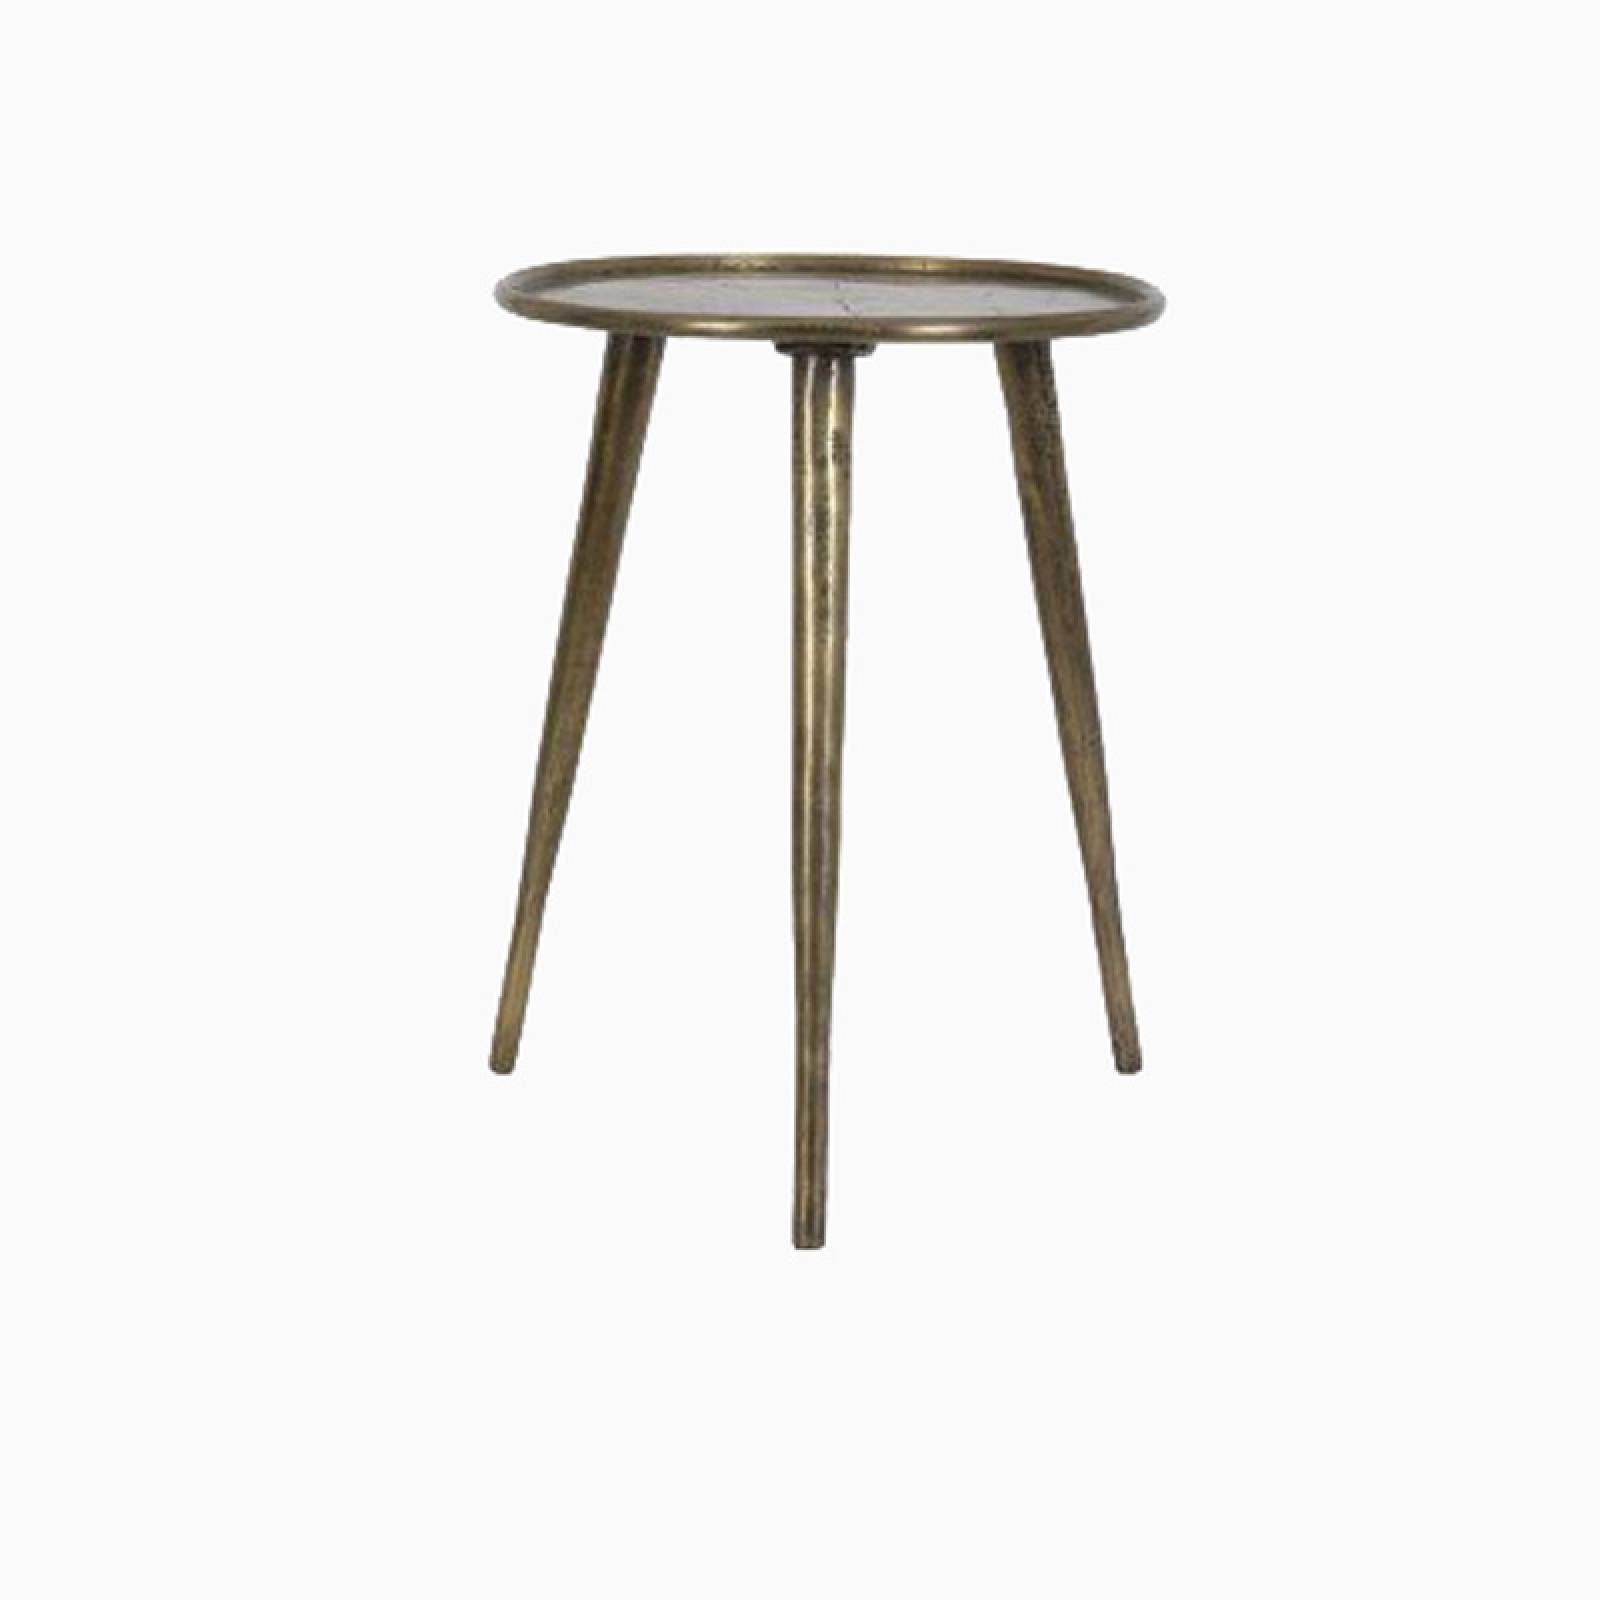 Chak Small Side Table With Tripod Legs In Antique Bronze